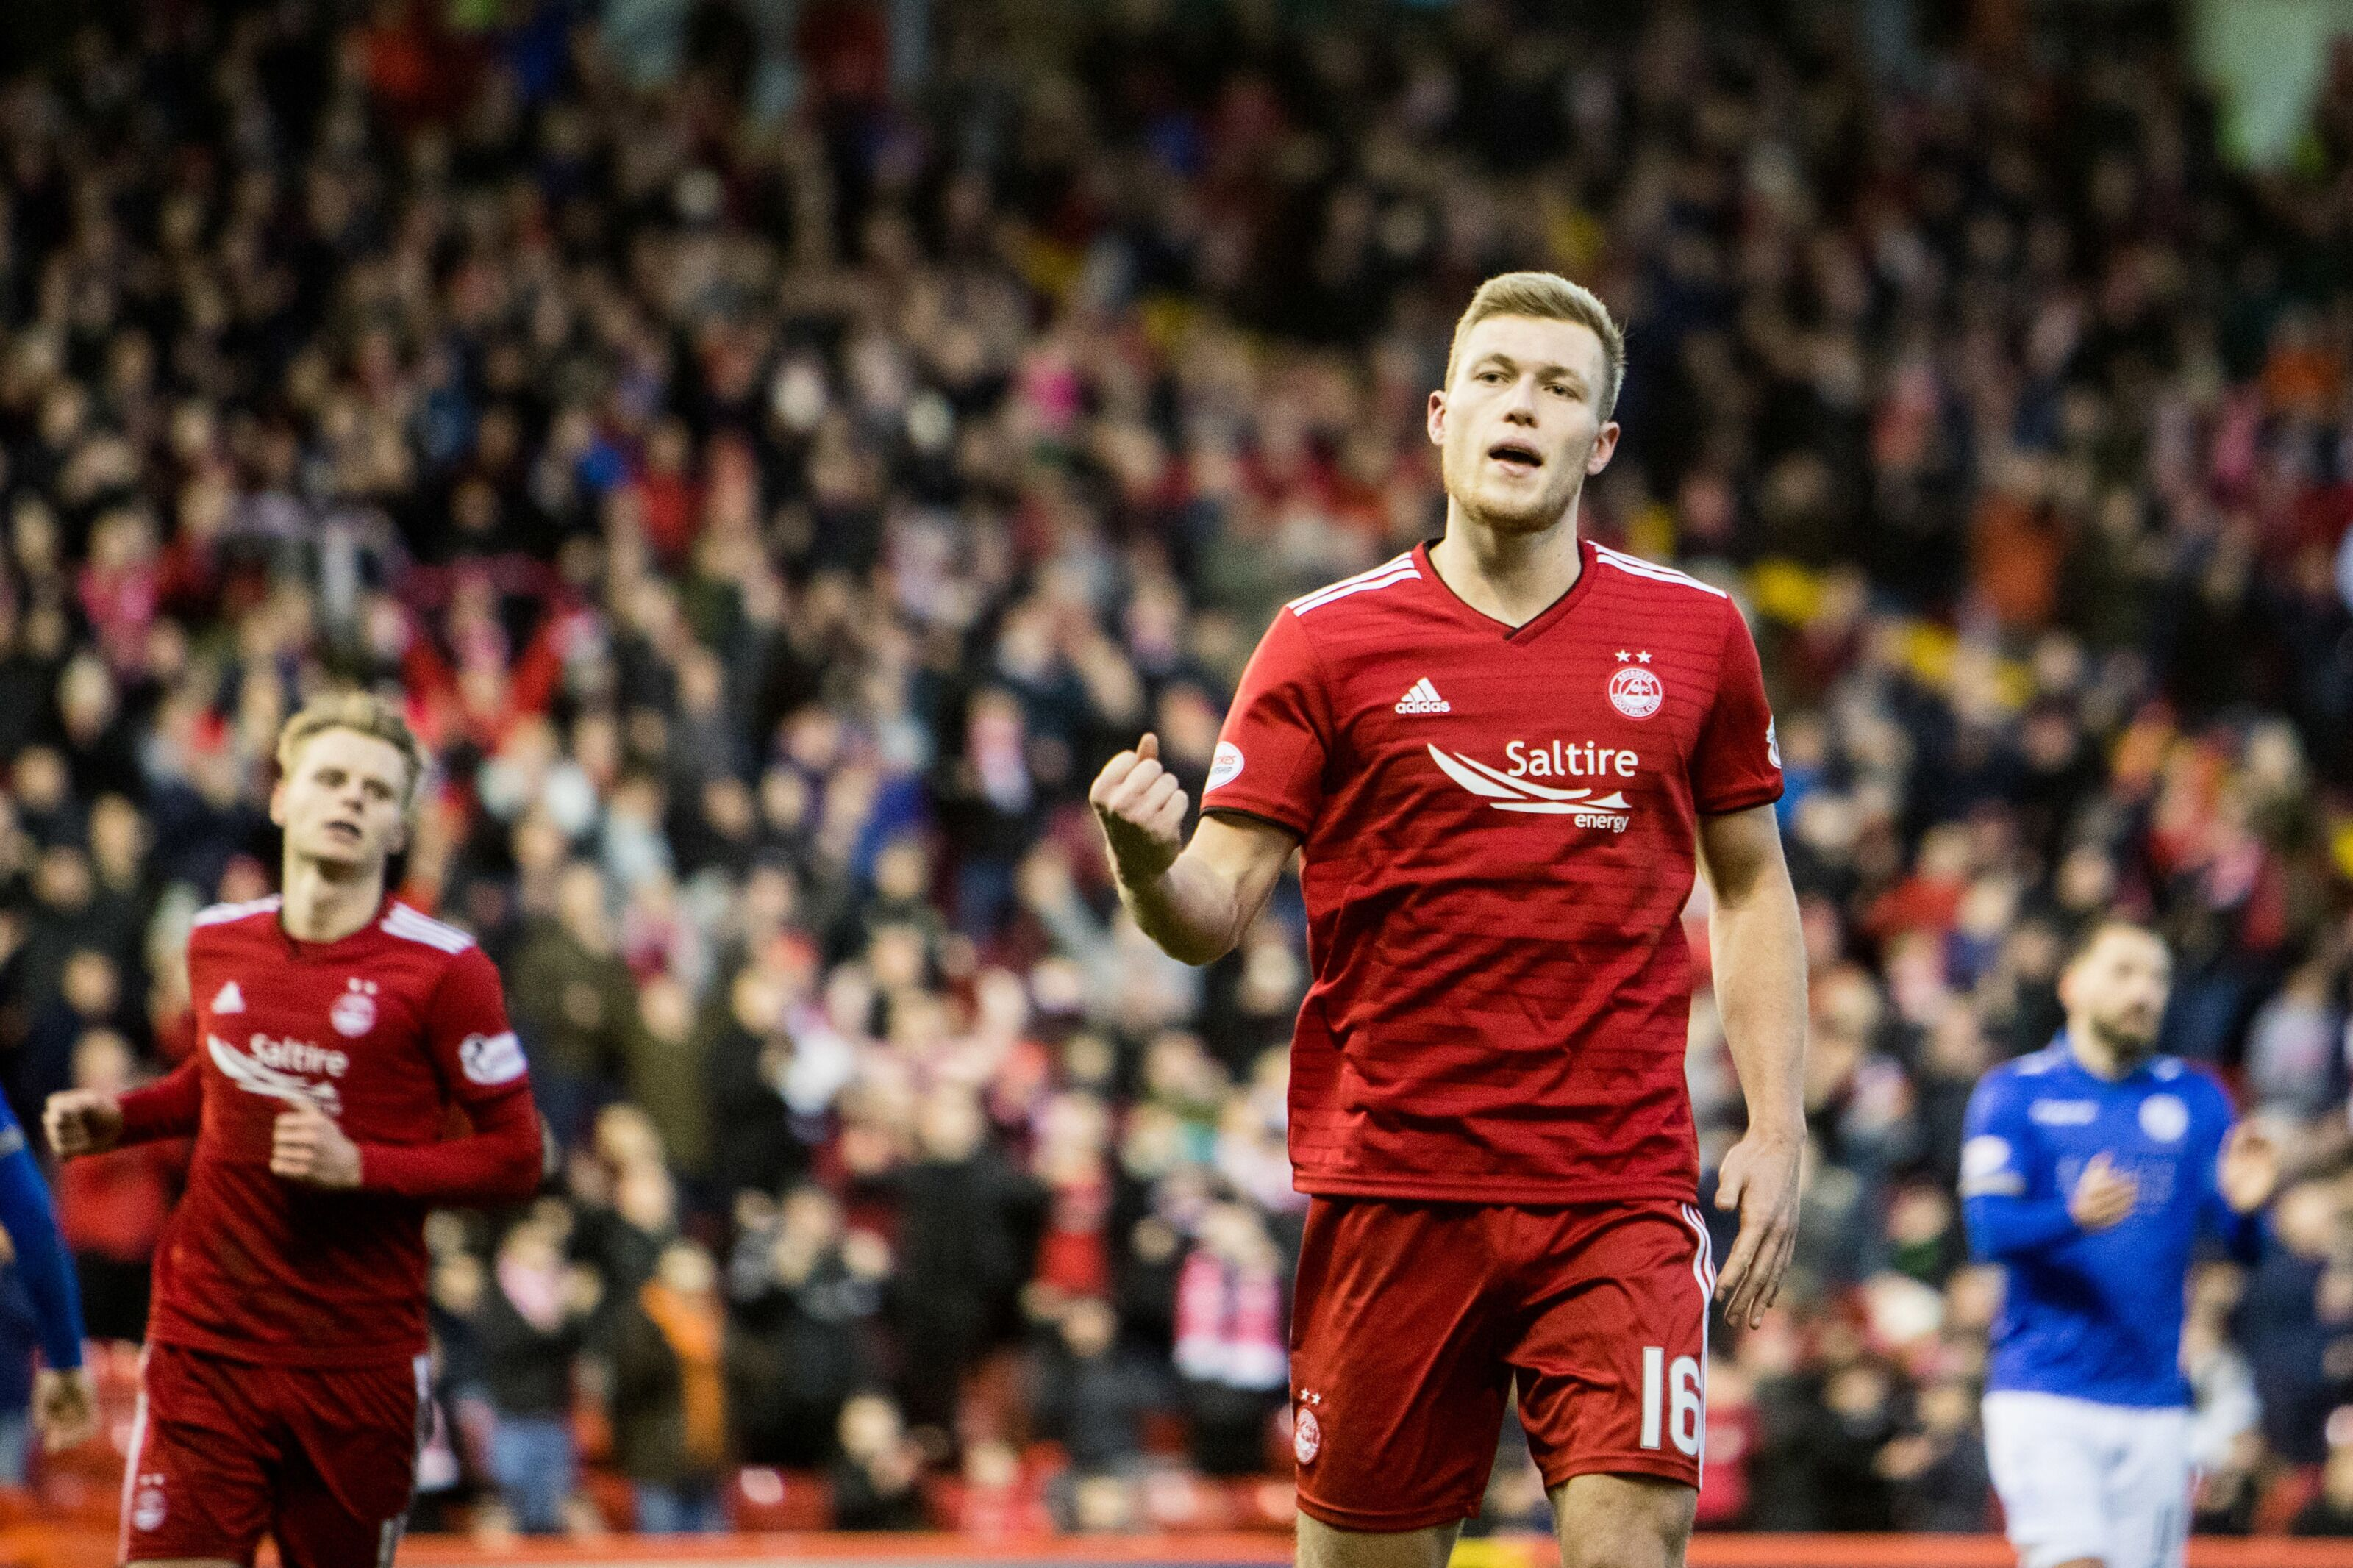 New York Red Bulls: Sam Cosgrove the perfect Bradley Wright-Phillips replacement